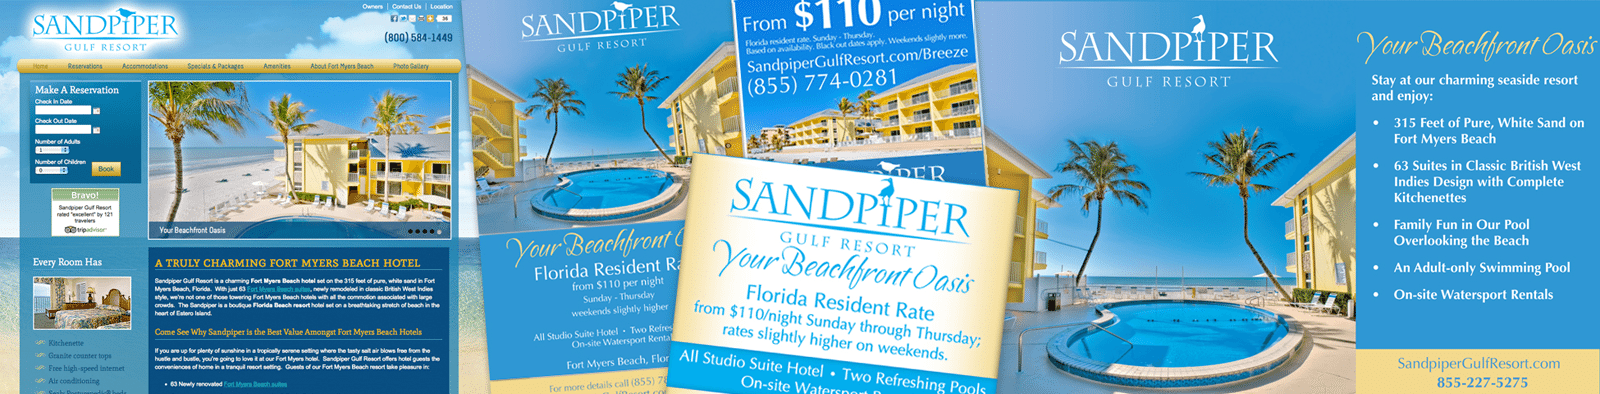 Hotel Branding Agency Creative for SandPiper Gulf Resort